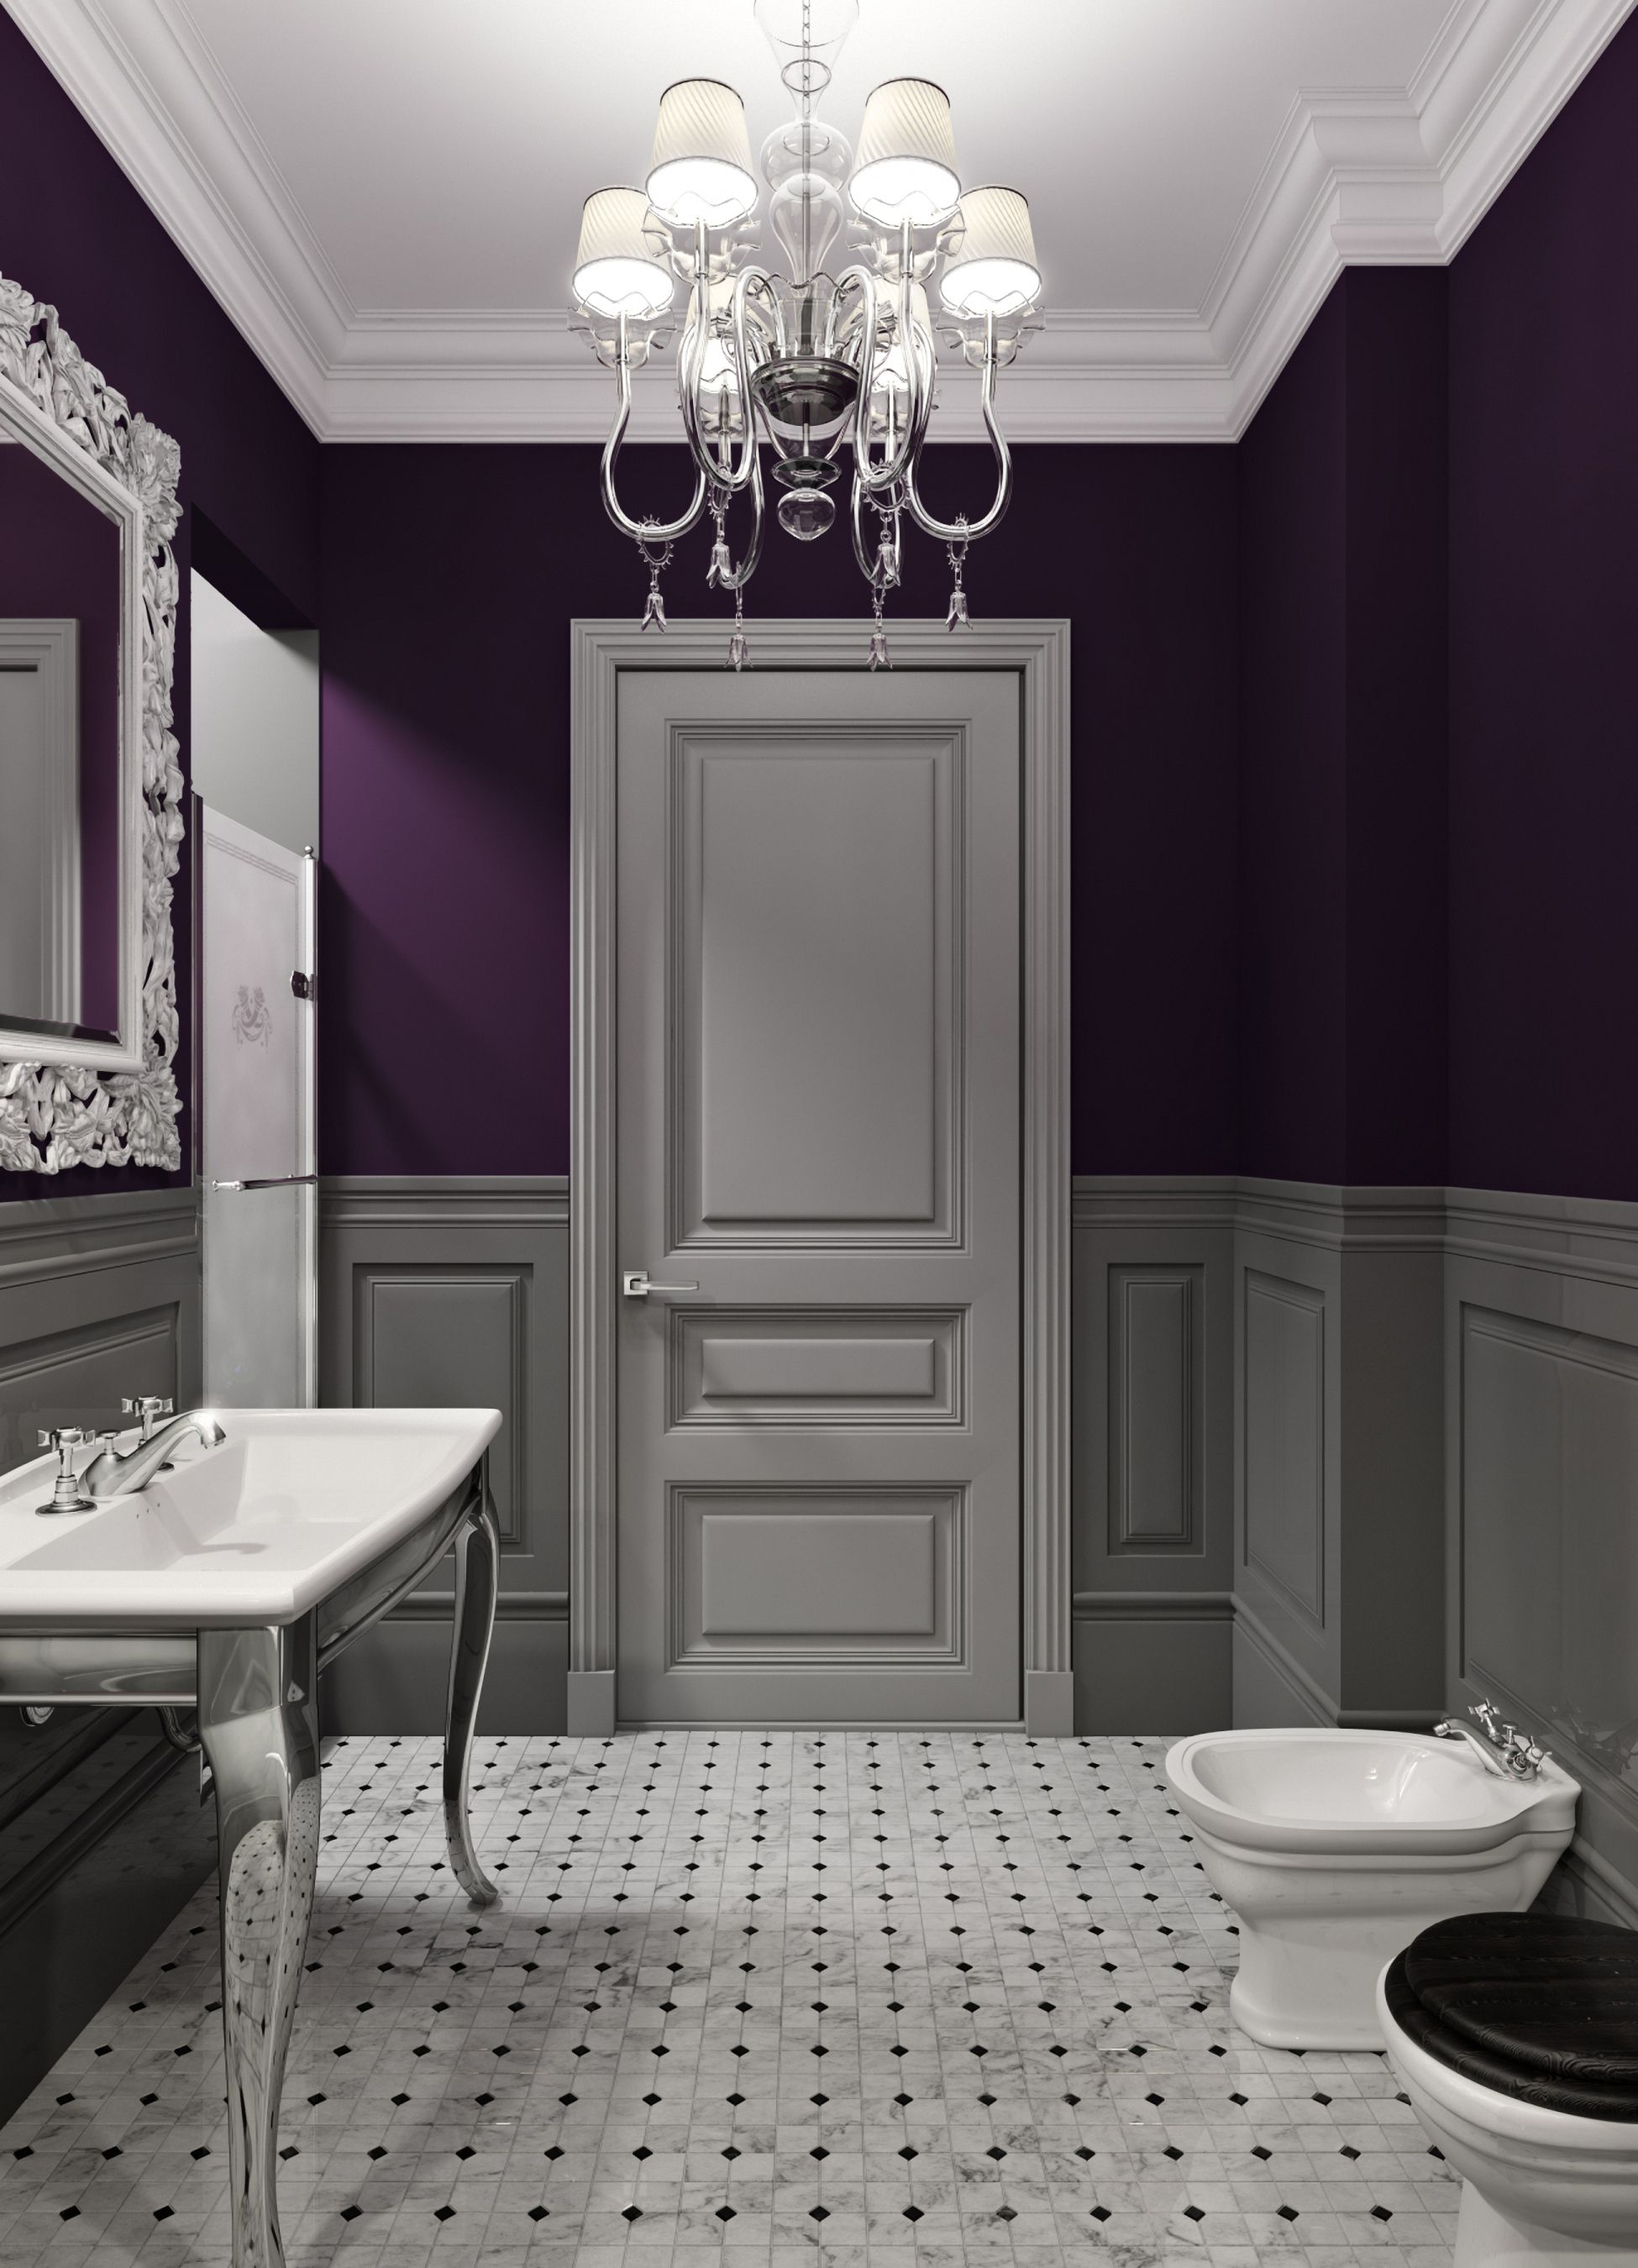 Purple is a very Victorian color and with this renovation the